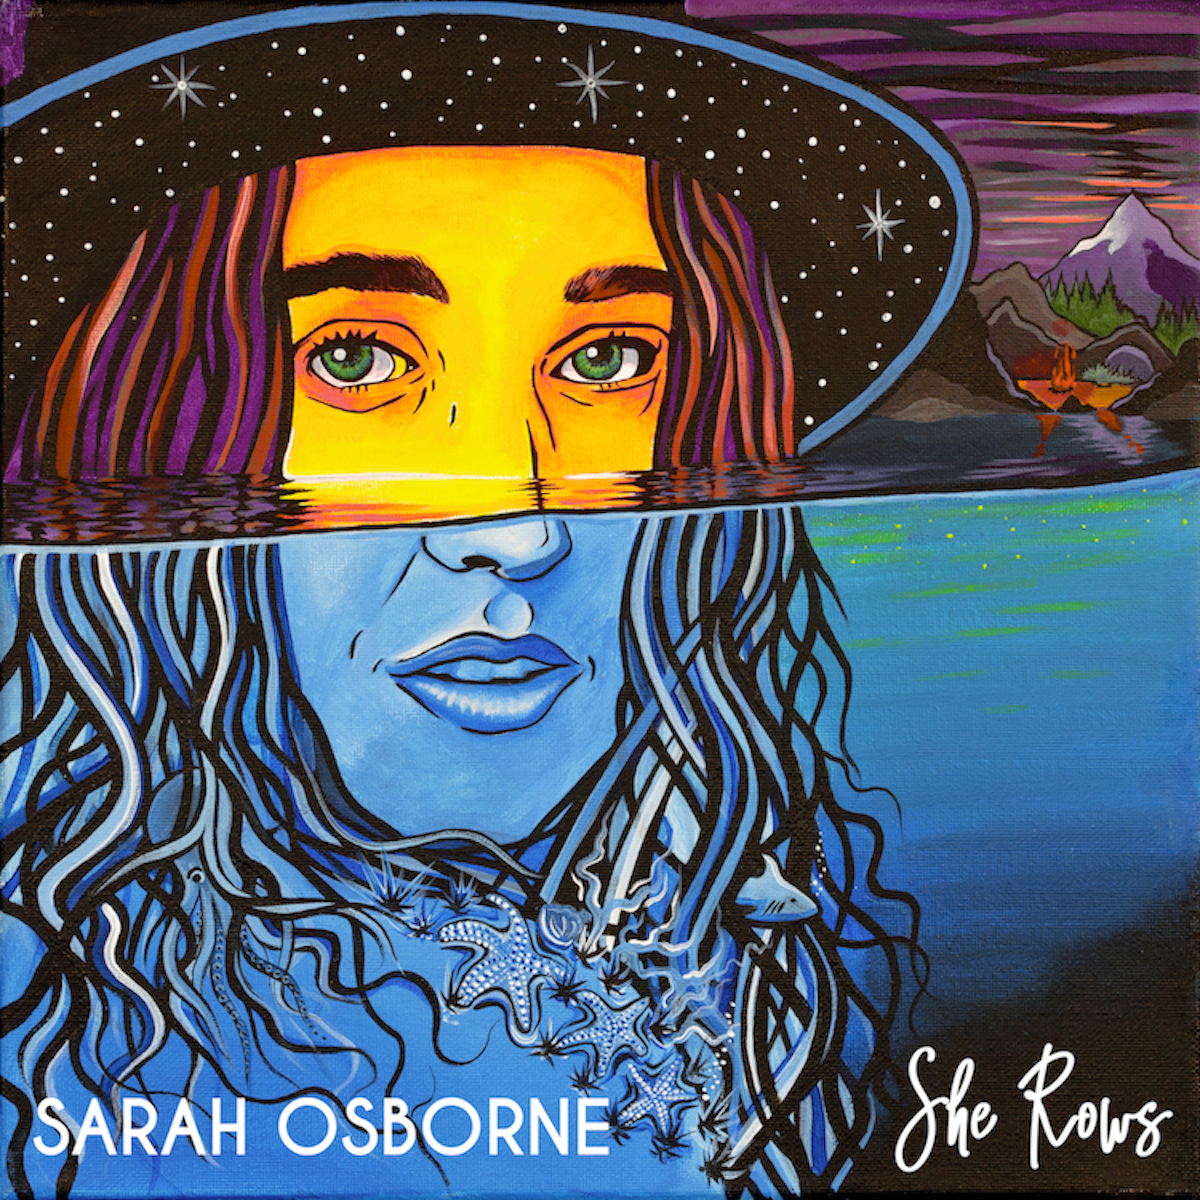 'She Rows' EP - Produced and engineered by Neil Osborne, 'She Rows' is a six song EP that takes Sarah Osborne's original songs on a timeless jazz inspired journey.